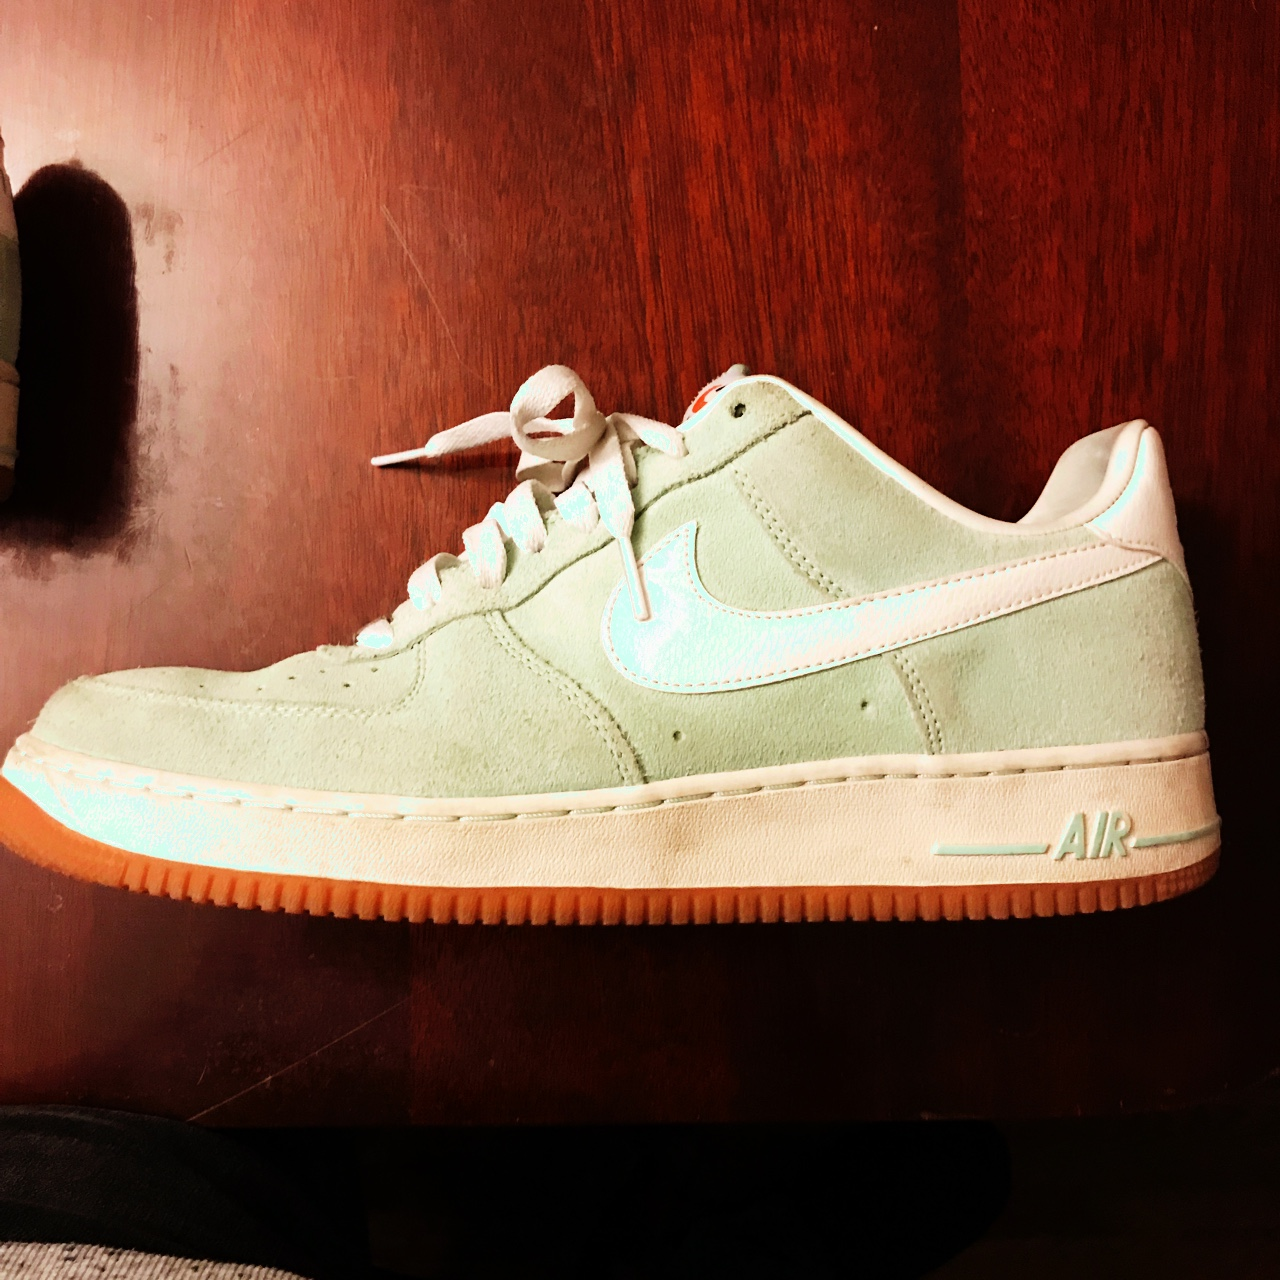 11 Nike Suede 1 Force White Air Green Depop Mint Size 0POkXwn8